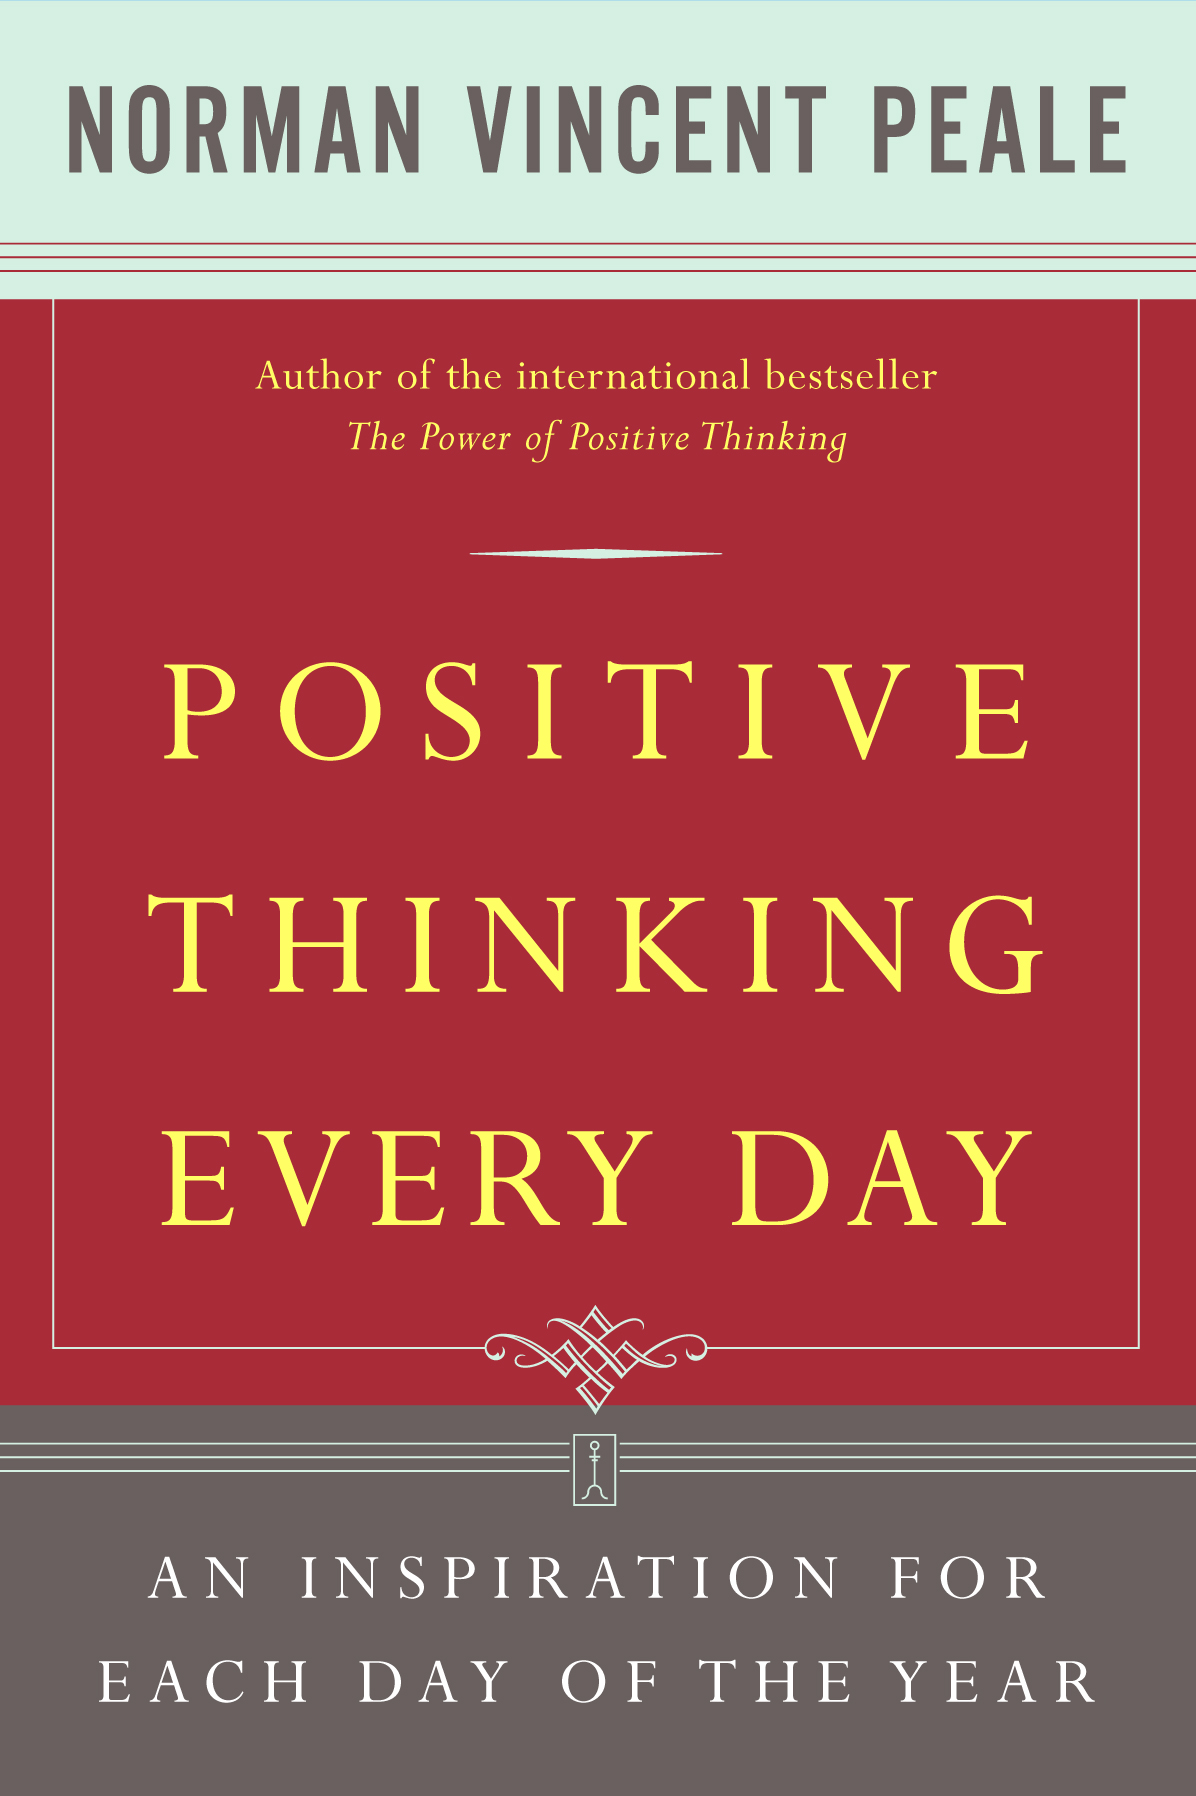 The Power Of Positive Thinking Quotes Norman Vincent Peale: Positive Thinking Every Day